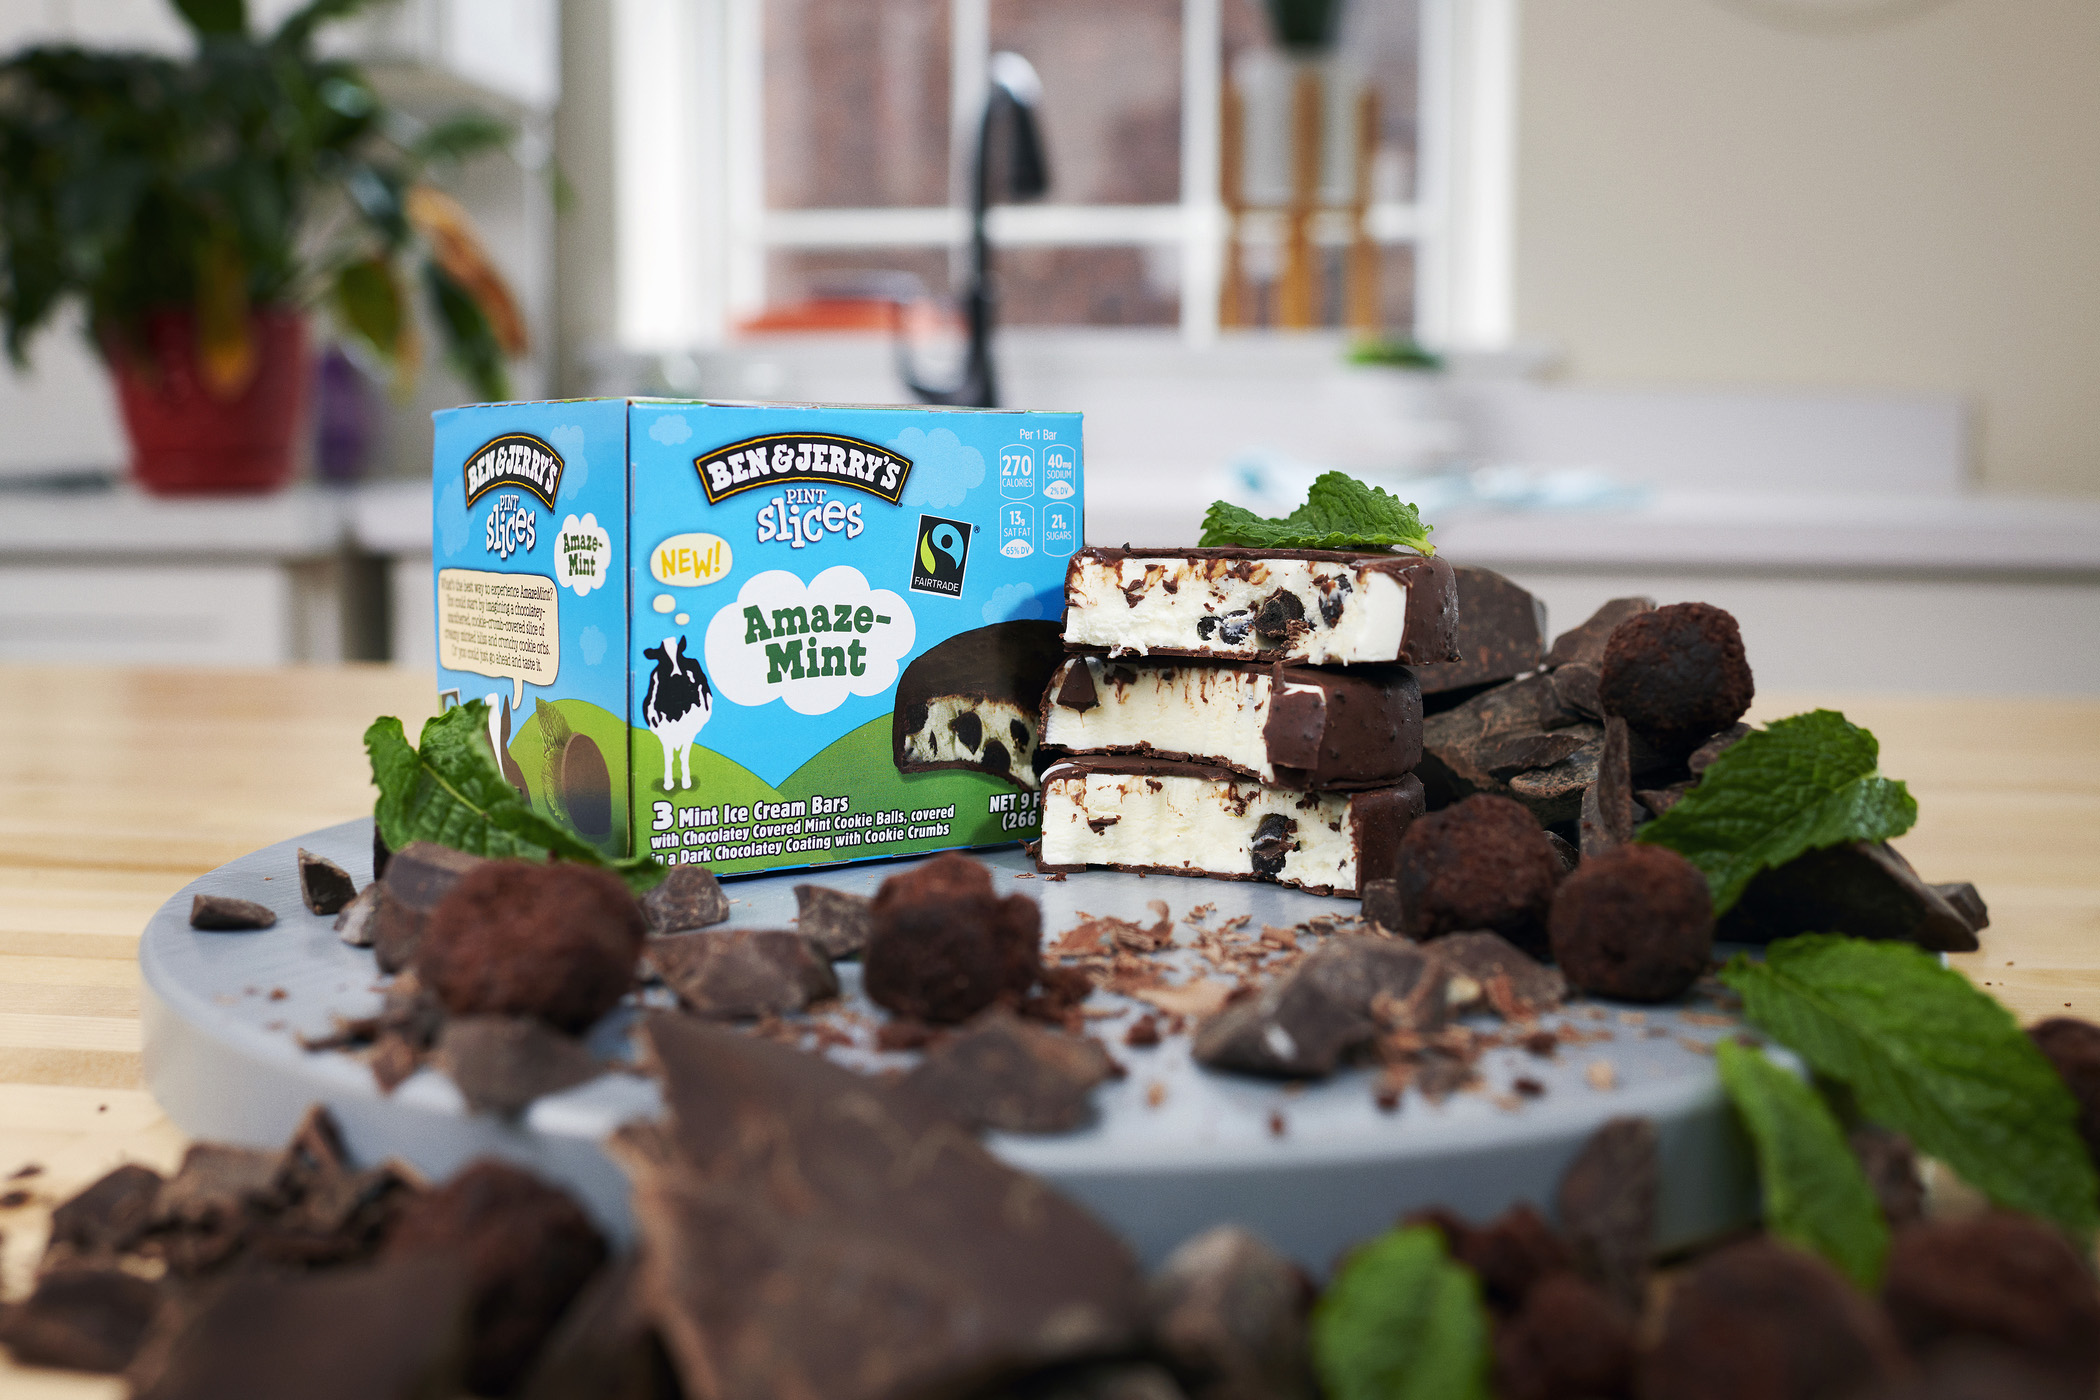 No spoon? No problem. Ben & Jerry's Pint Slices are now available in AmazeMint.